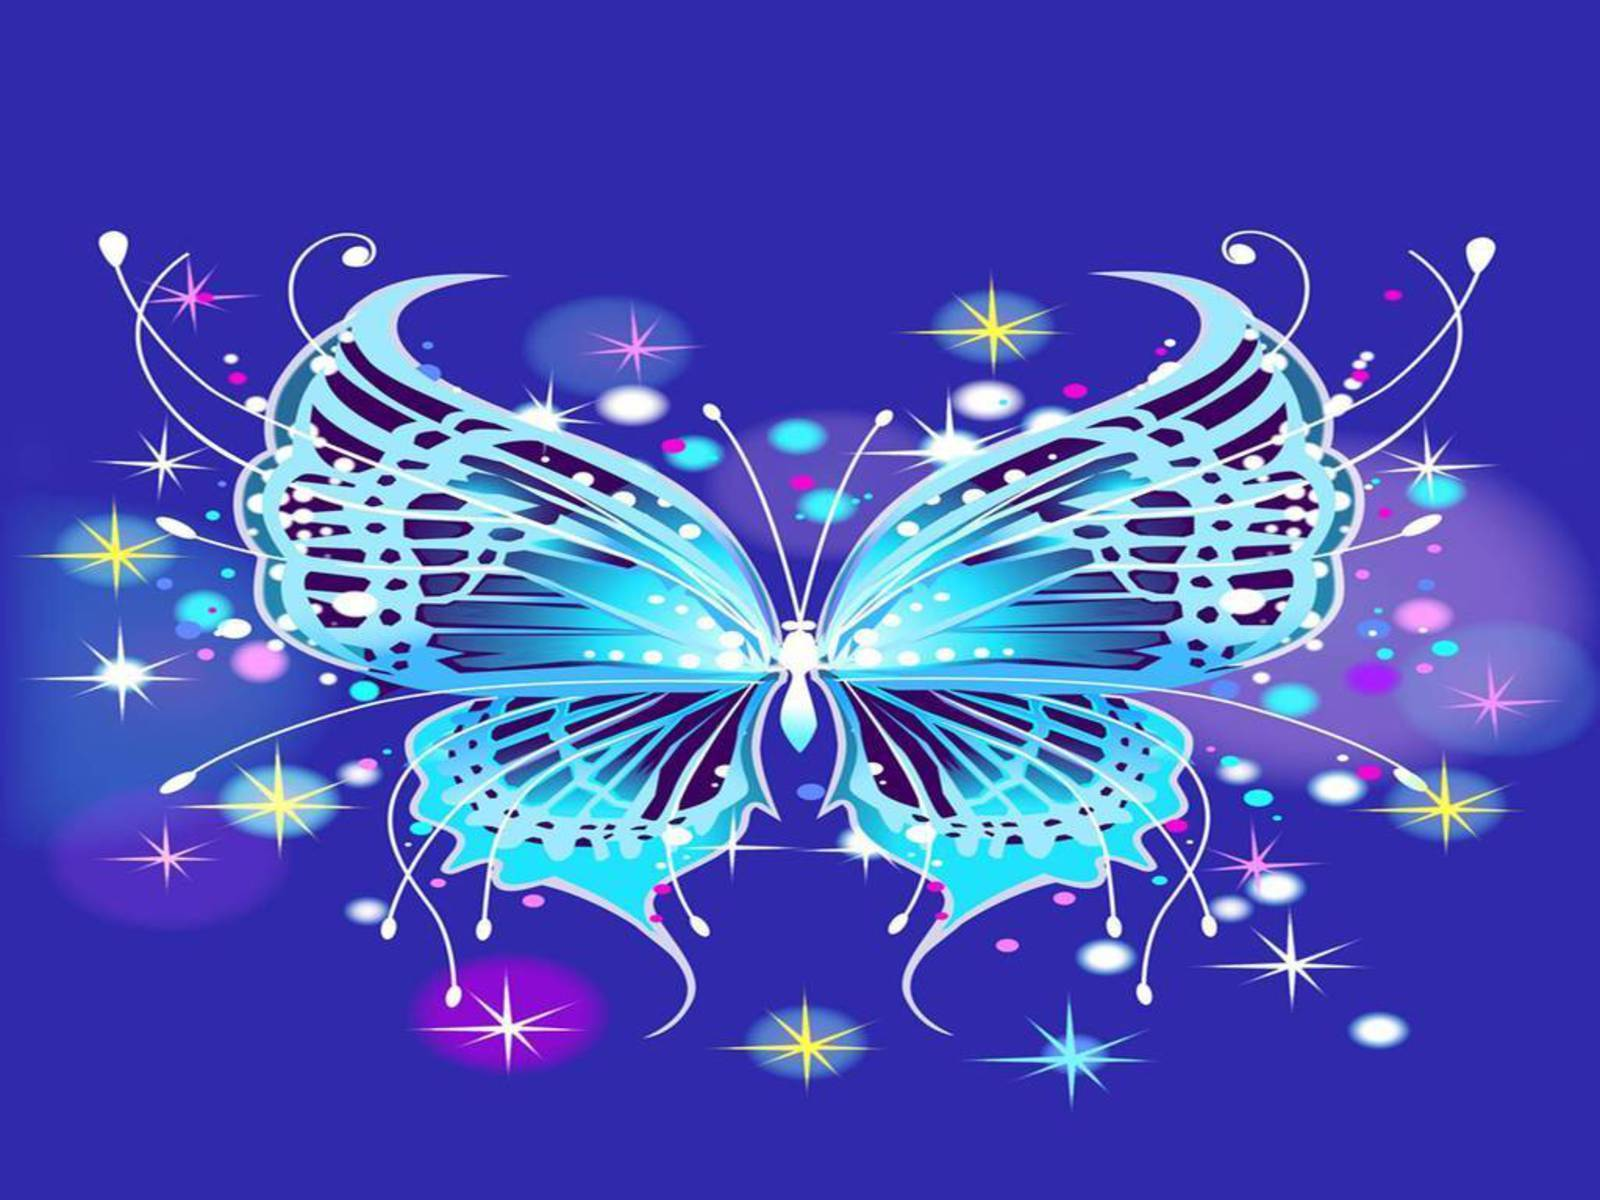 1600x1200 - Pretty Butterfly Backgrounds 7